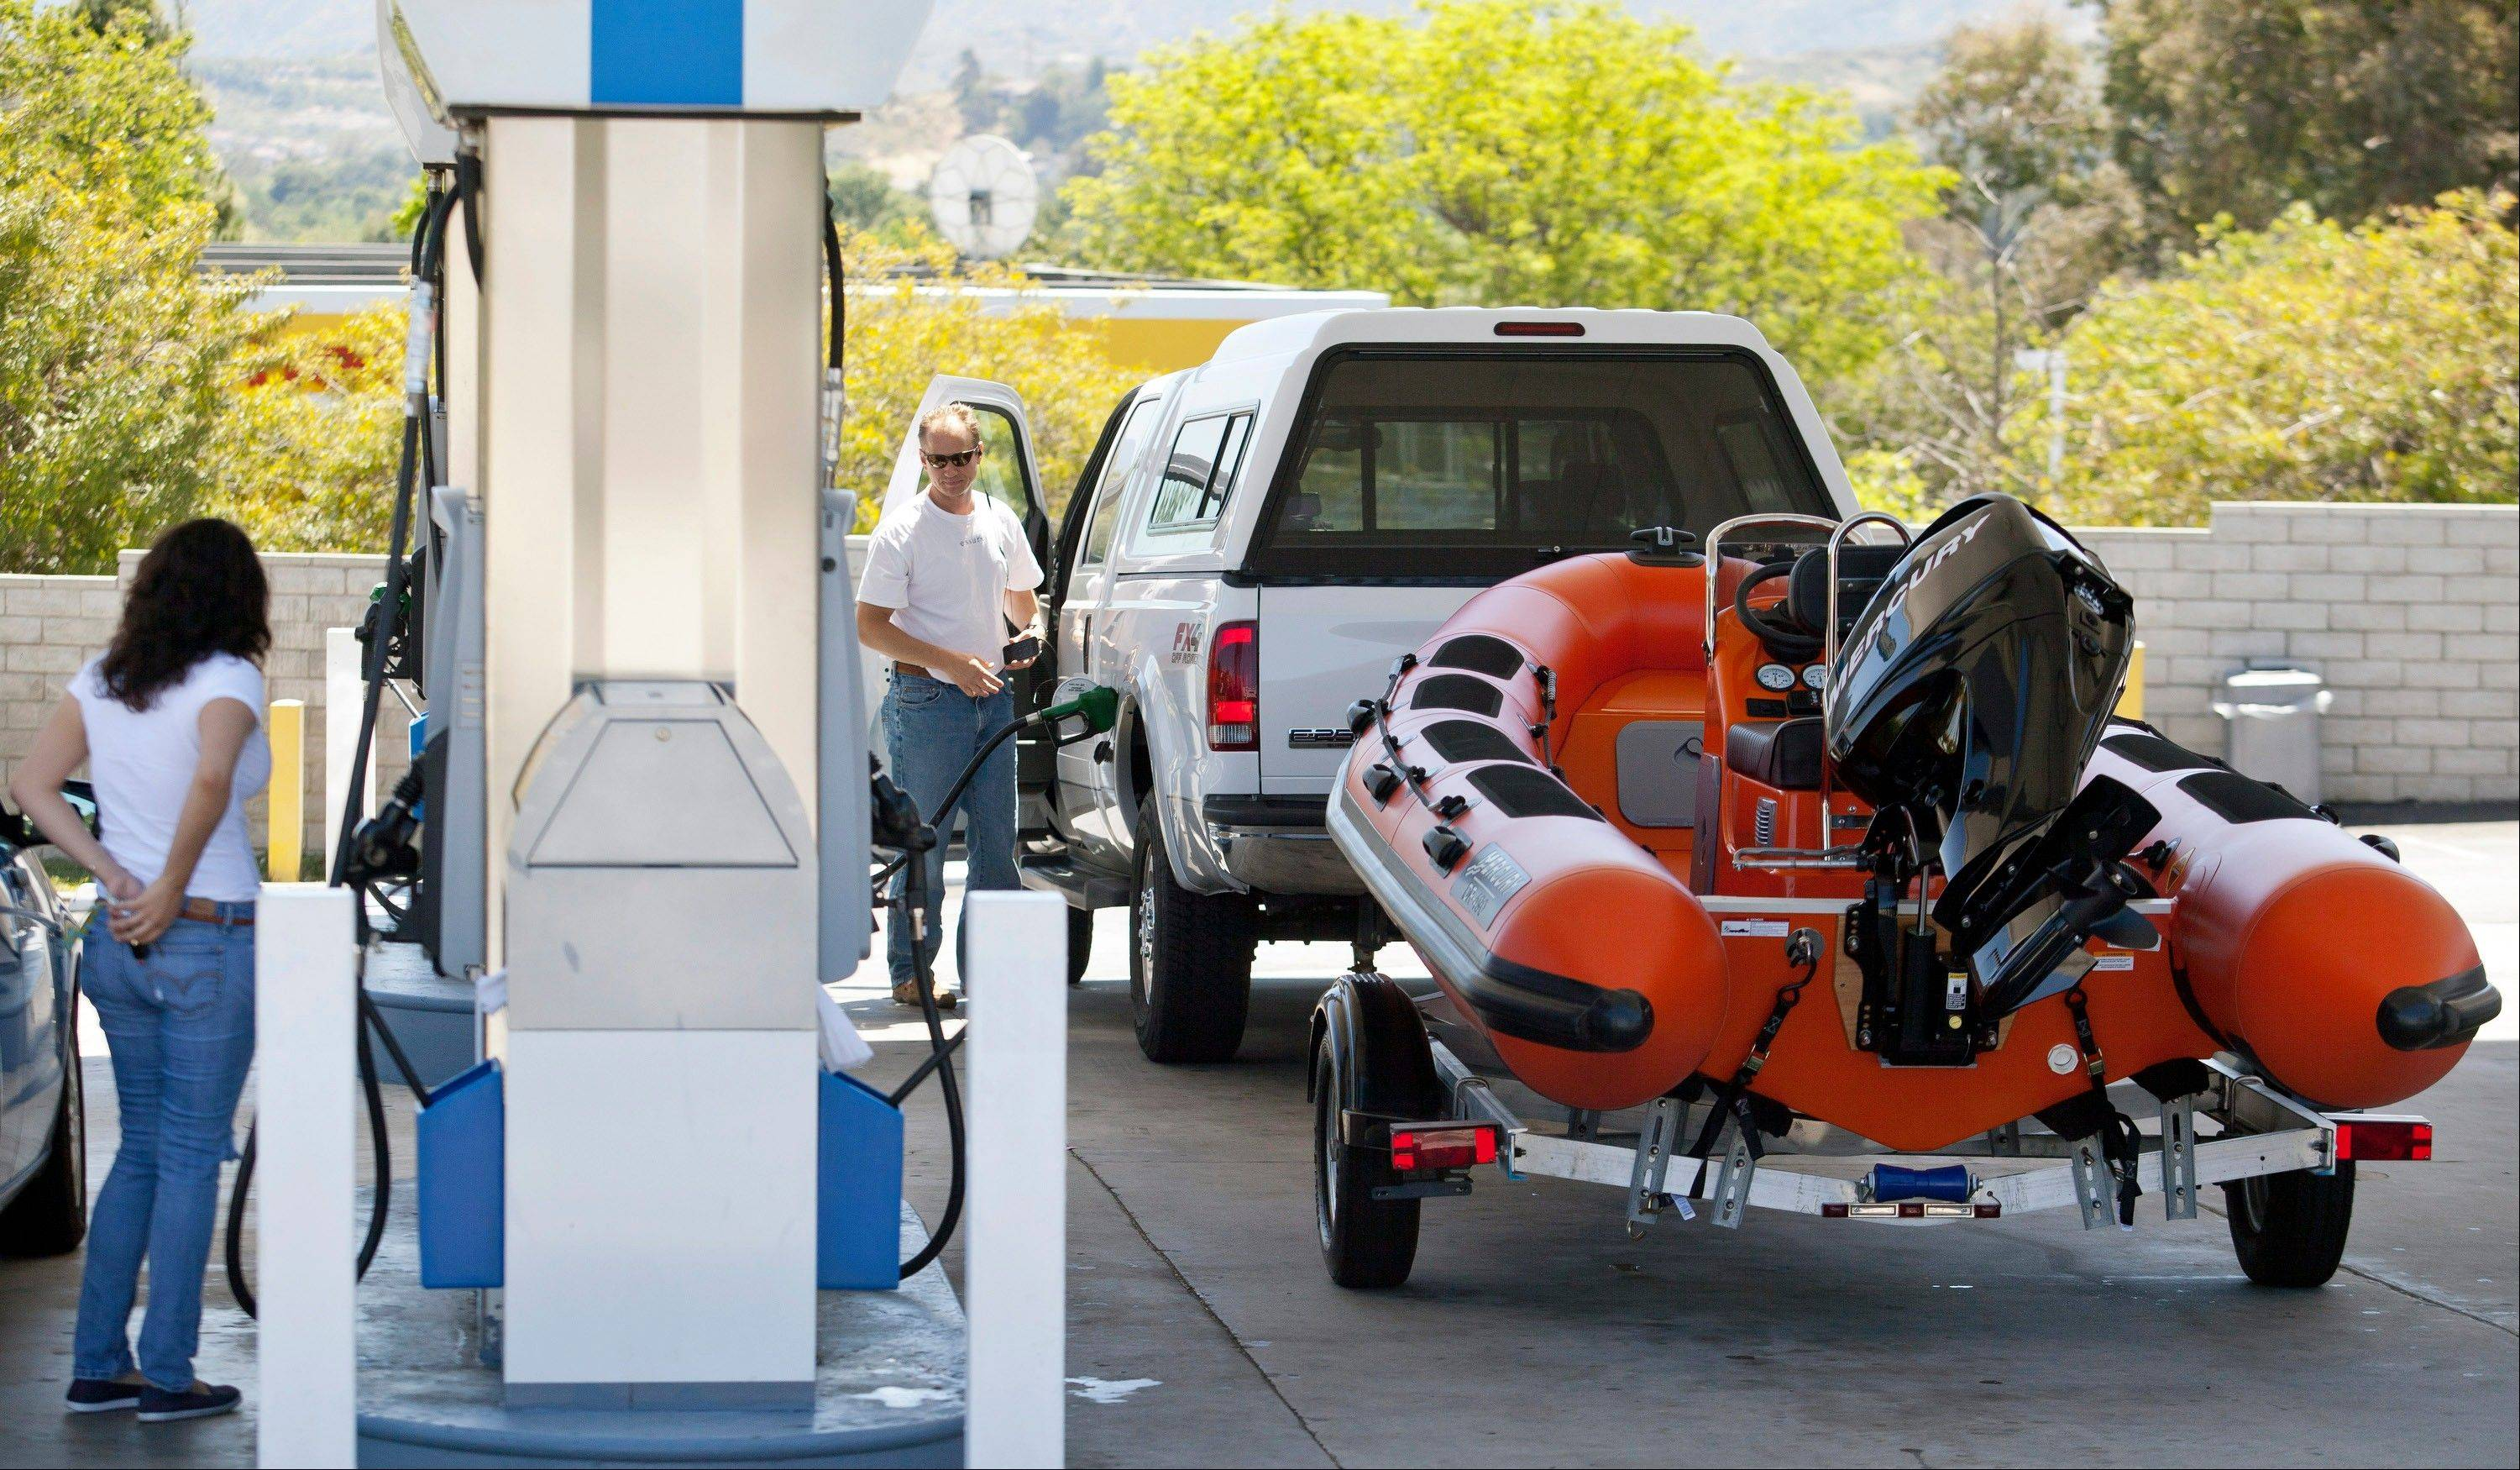 Daily Herald file photoHigh gas prices may put a cramp in some vacationers' style this Labor Day weekend.